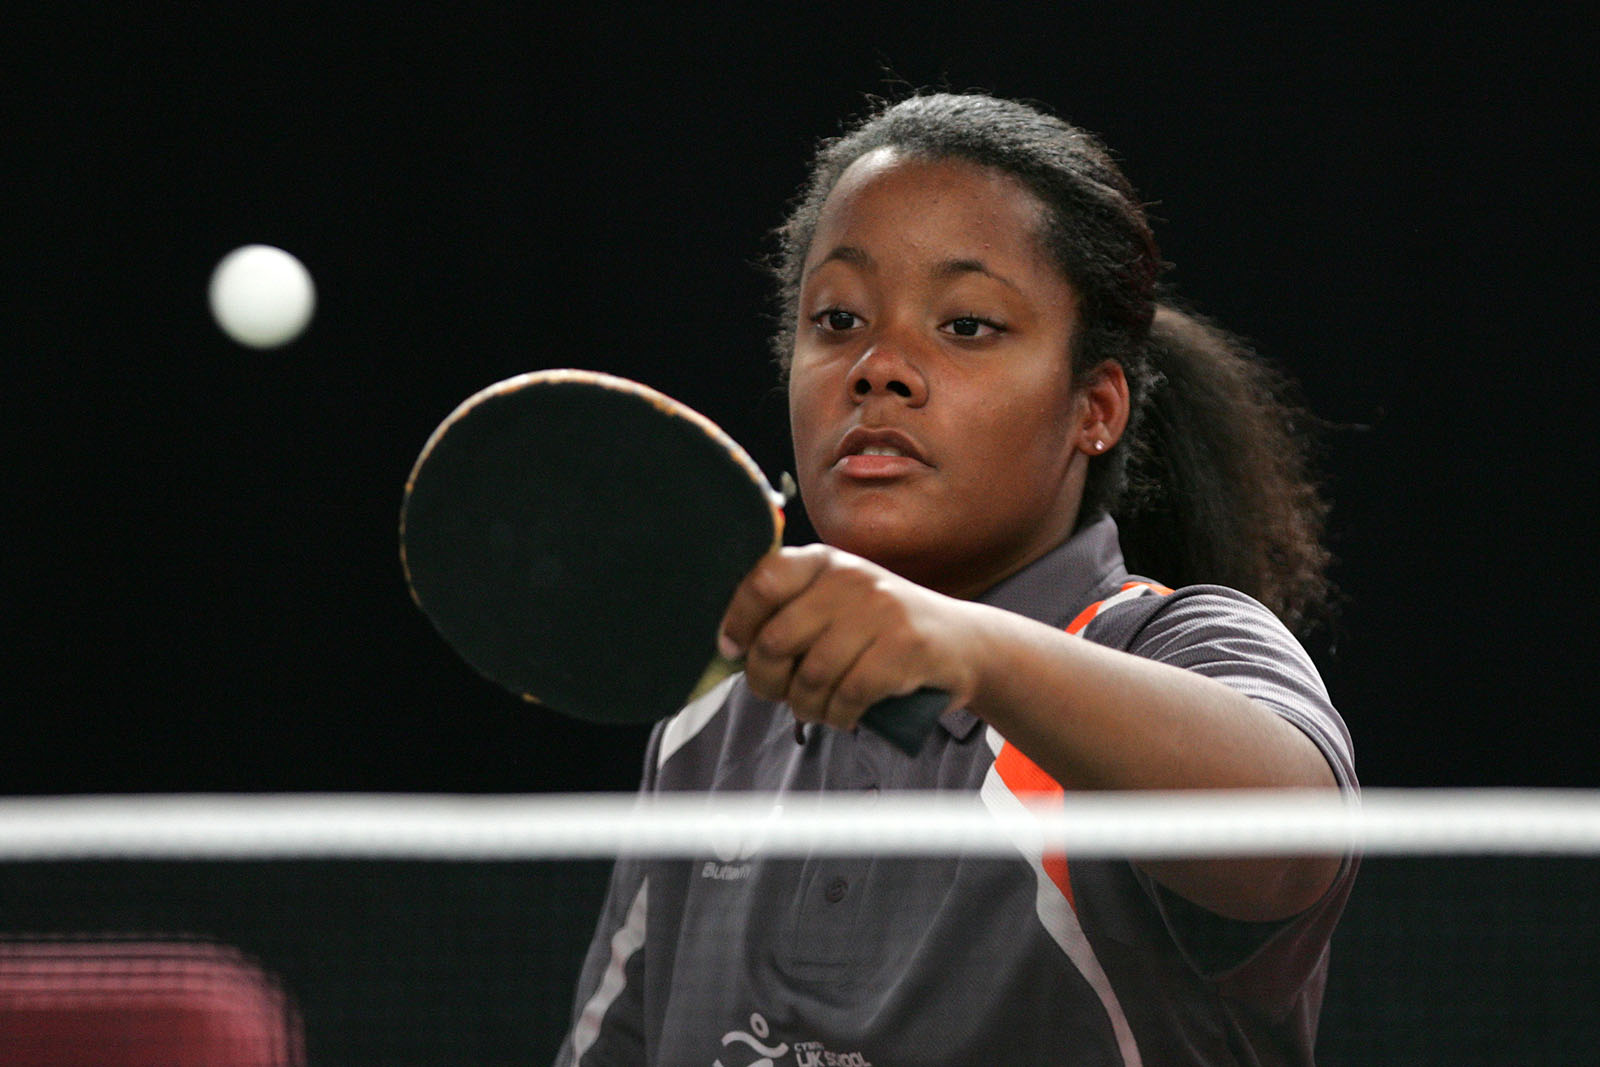 teenage girl playing table tennis